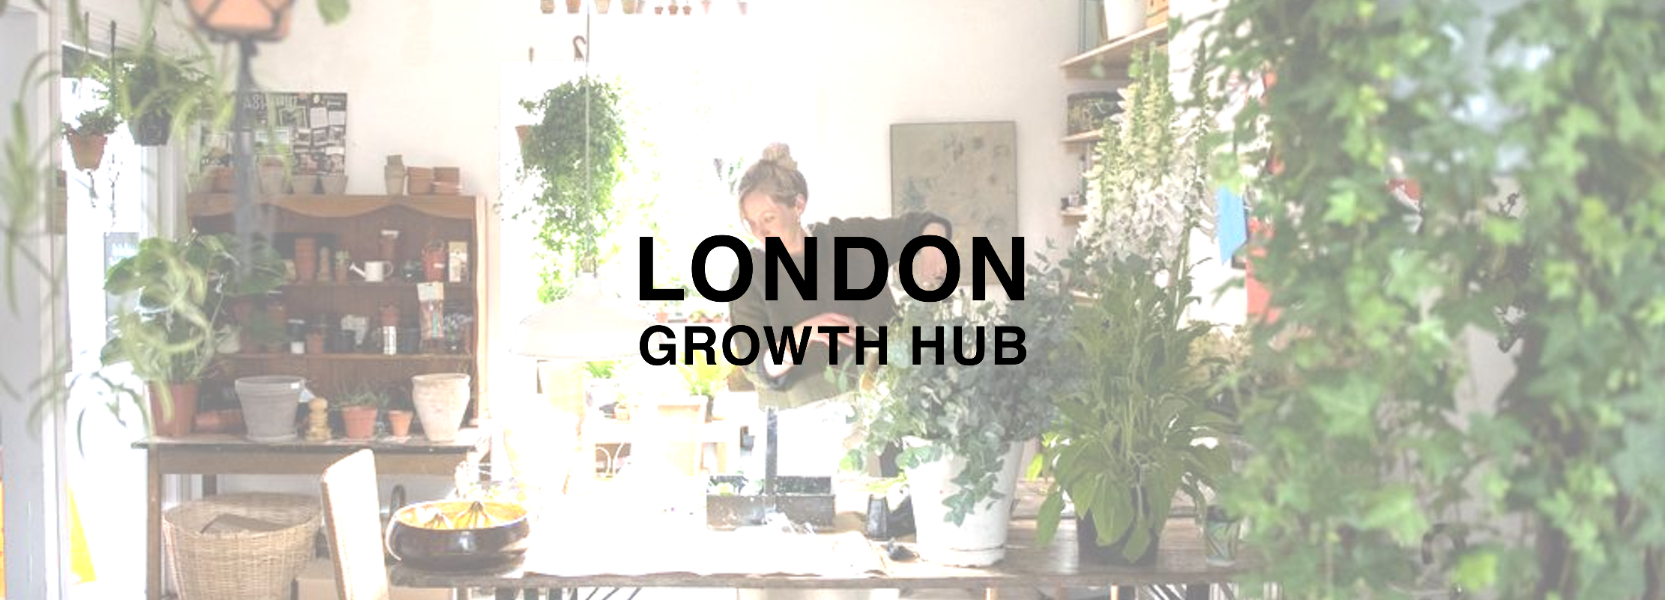 London Growth Hub business support